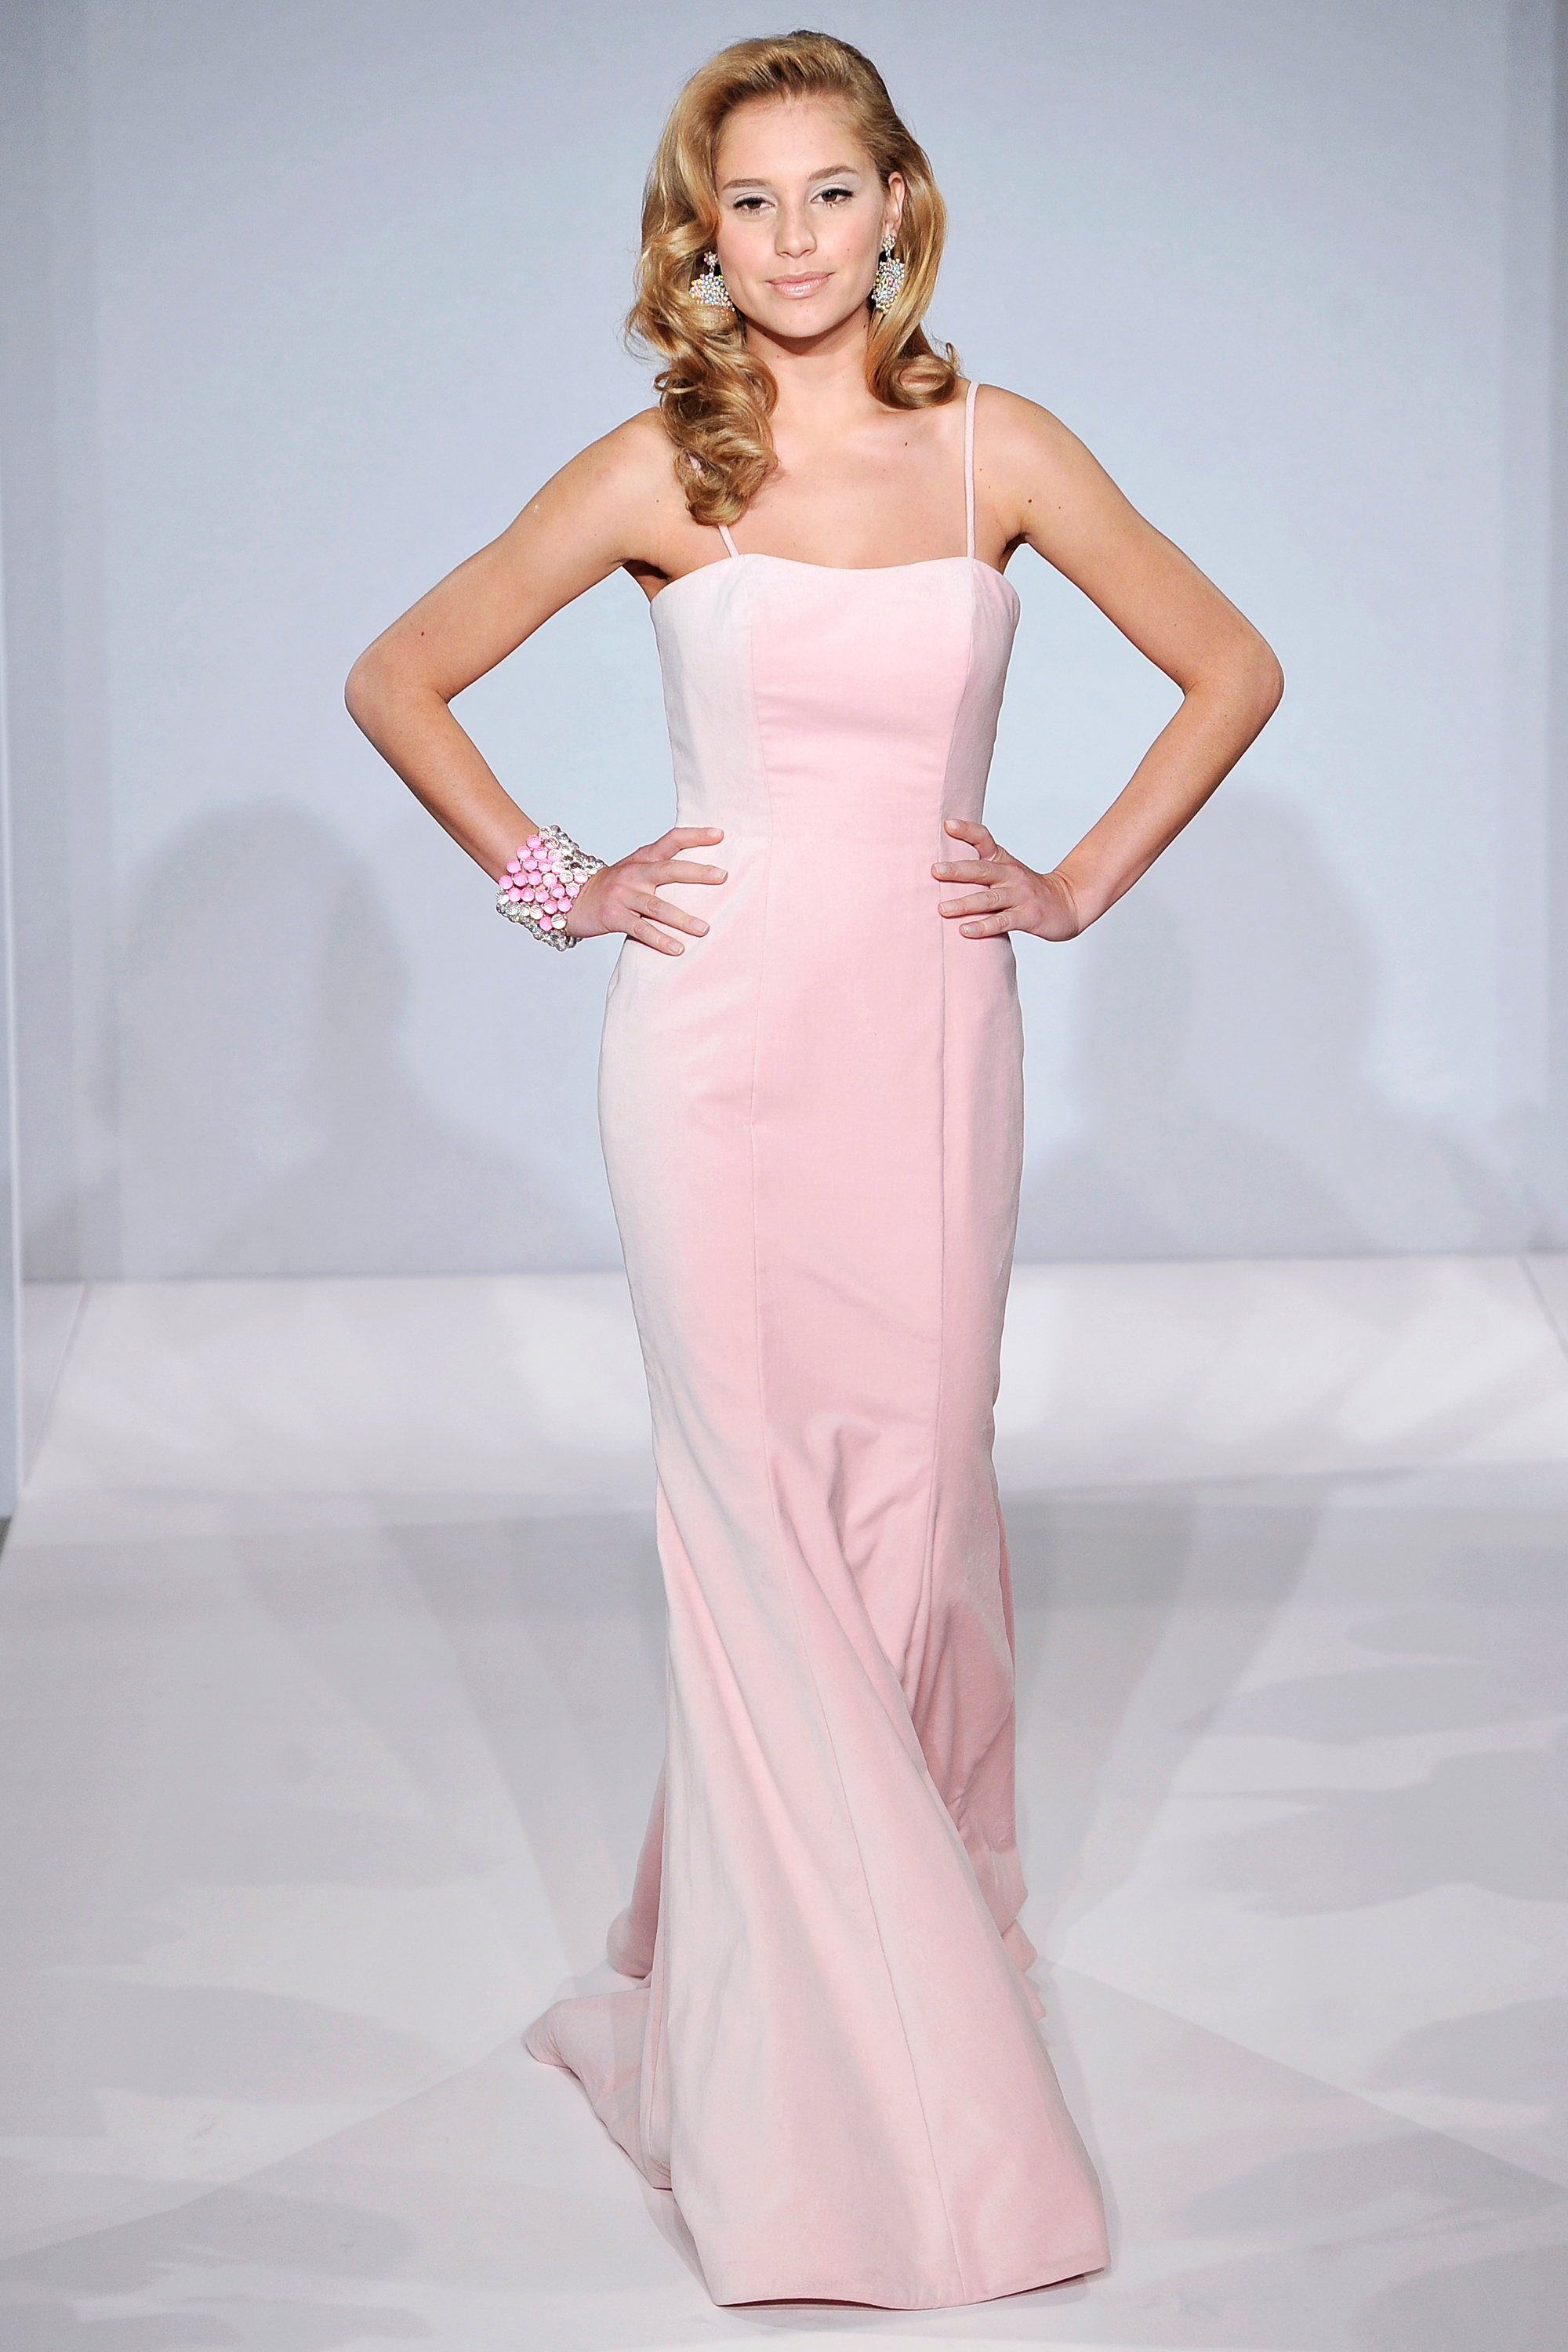 henry-roth-and-michelle-roth-spring2-13-wd108745-018-df.jpg